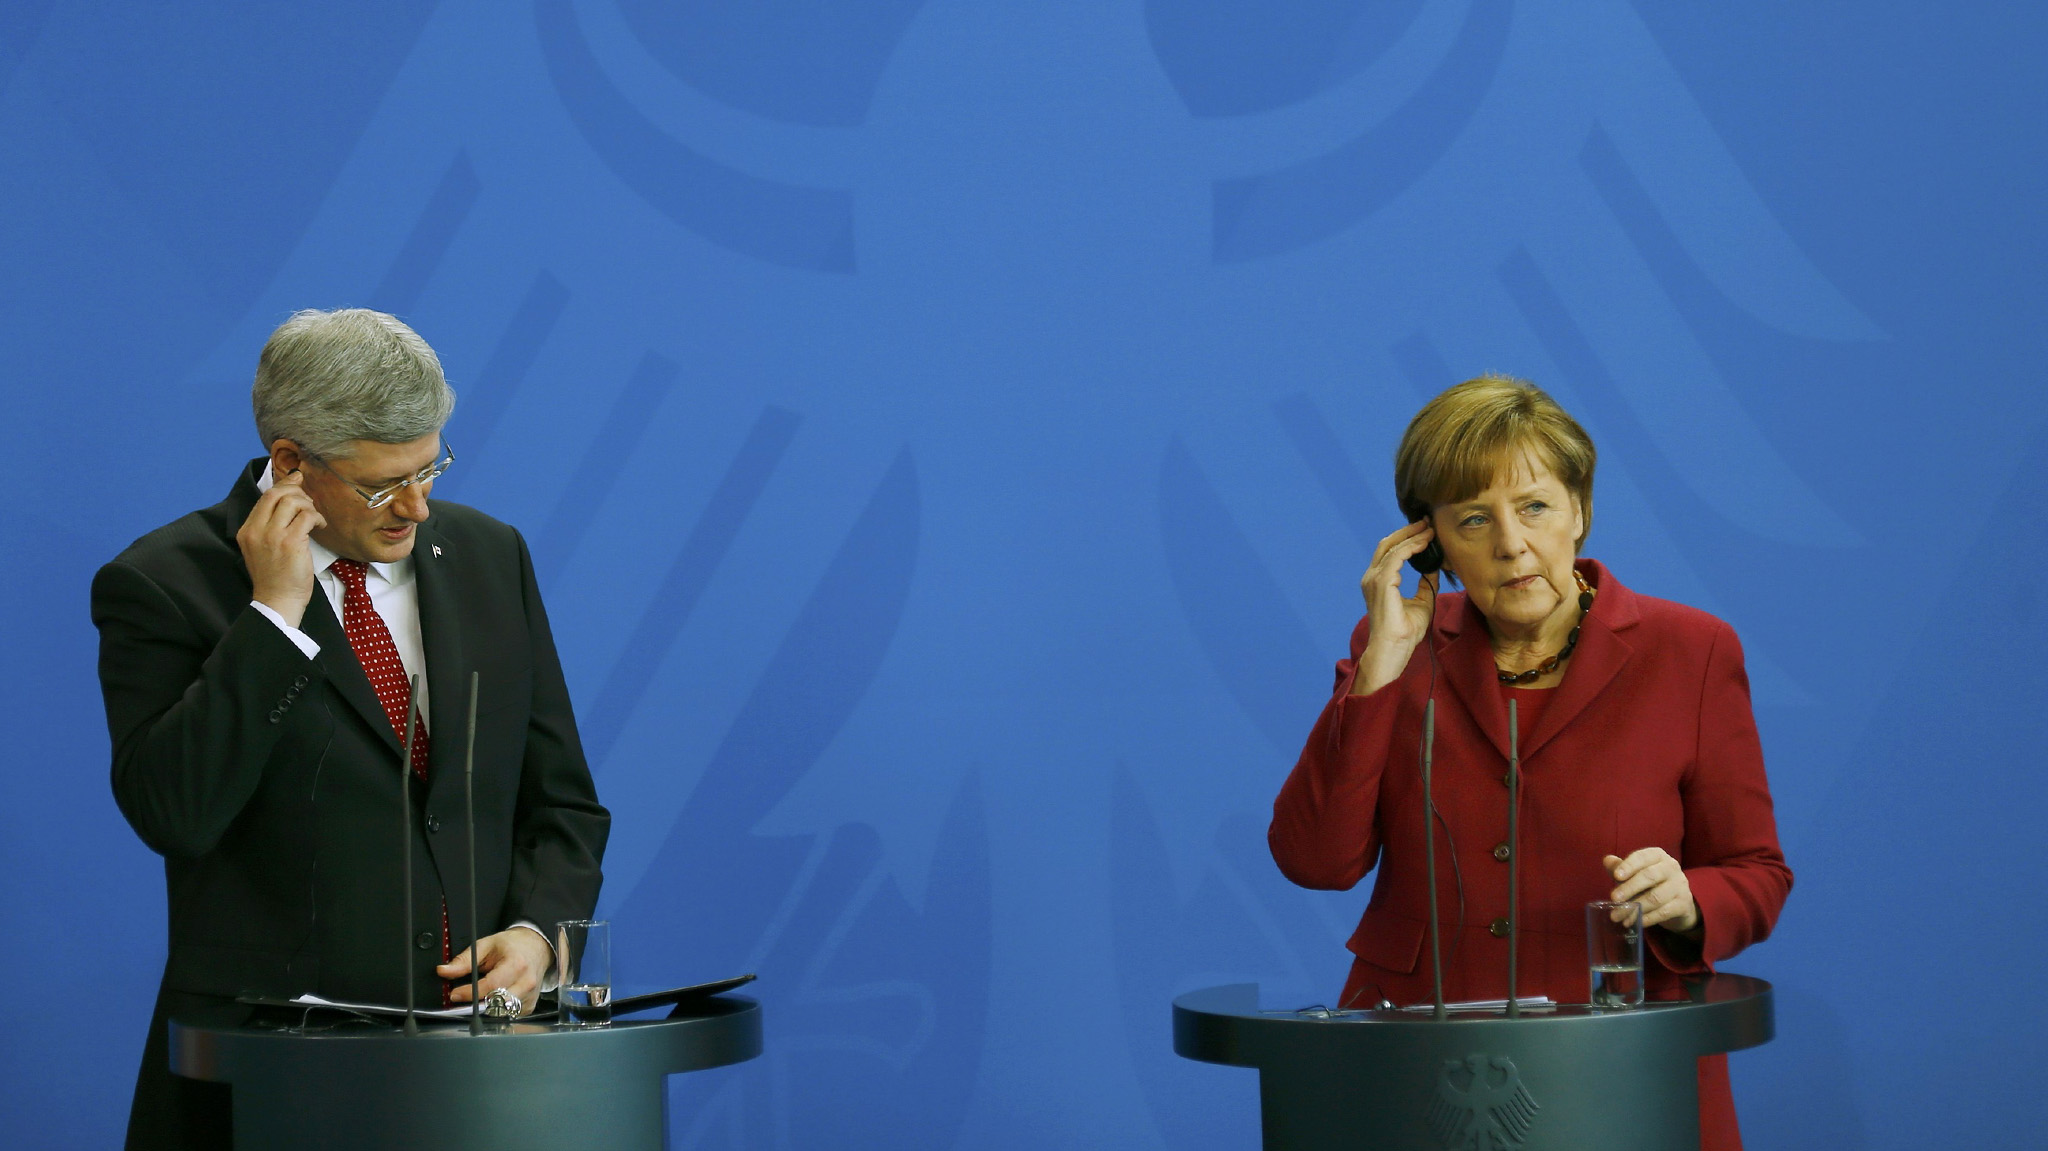 German Chancellor Merkel and Canadian Prime Minister Harper address joint news conference at Chancellery in Berlin...German Chancellor Angela Merkel and Canadian Prime Minister Stephen Harper address a joint news conference at the Chancellery in Berlin March 27, 2014.               REUTERS/Kai Pfaffenbach (GERMANY  - Tags: POLITICS)